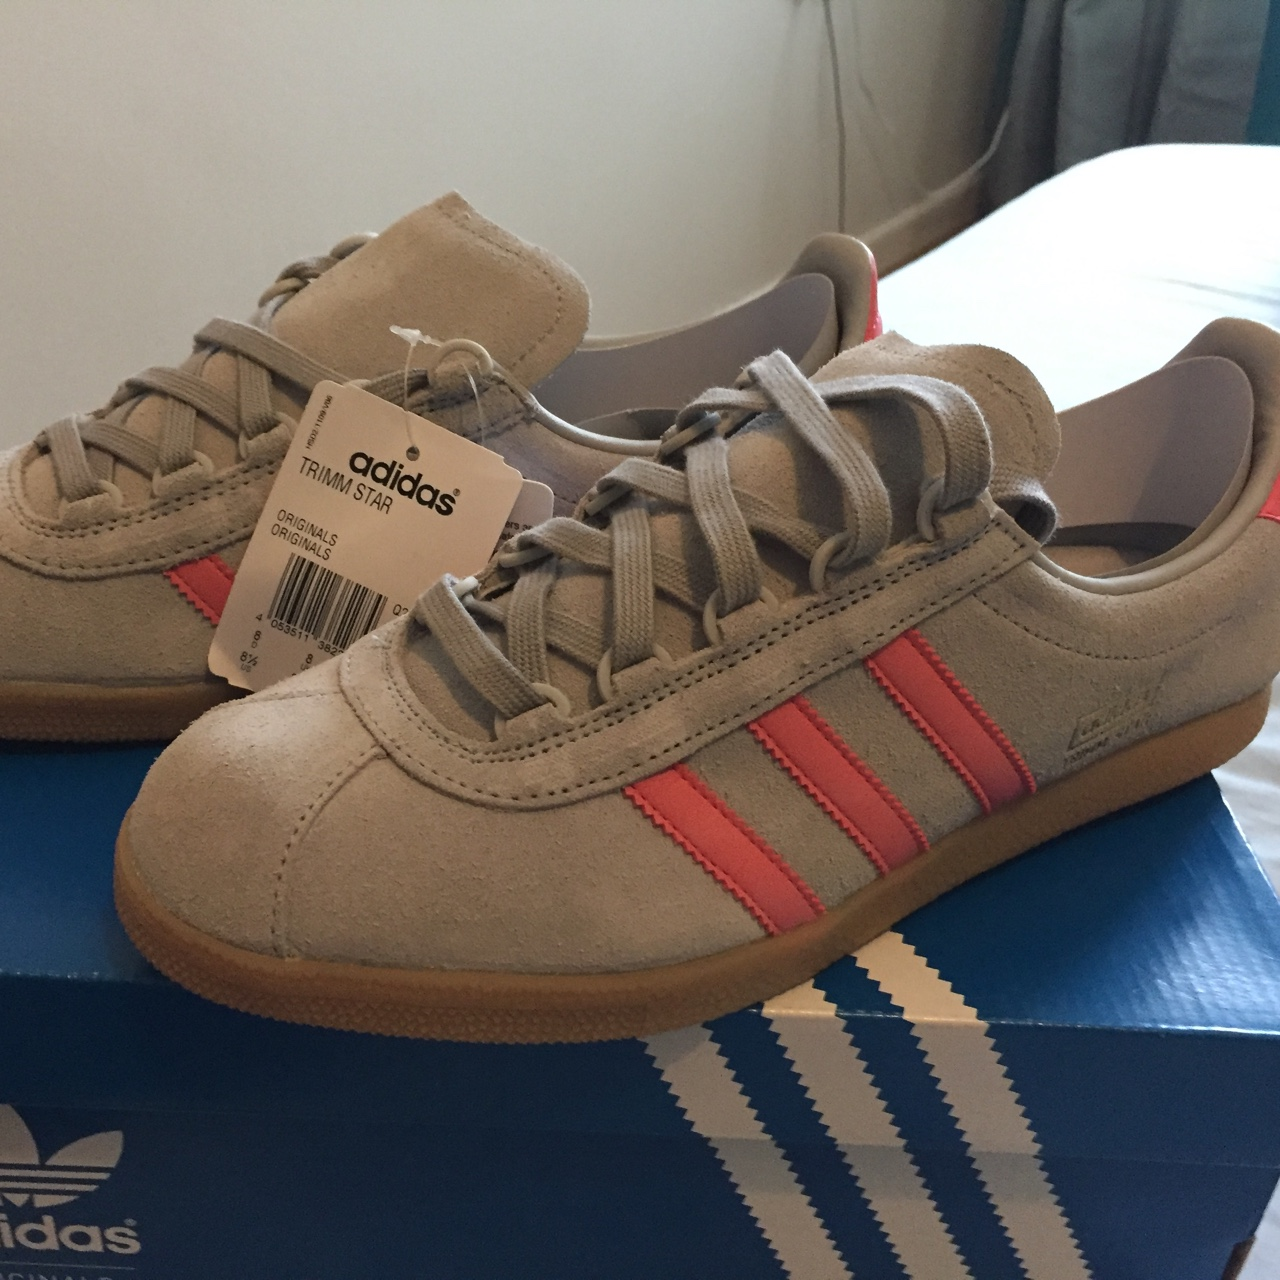 Adidas Trimm Star. Size 8. Brand new with tags. Depop